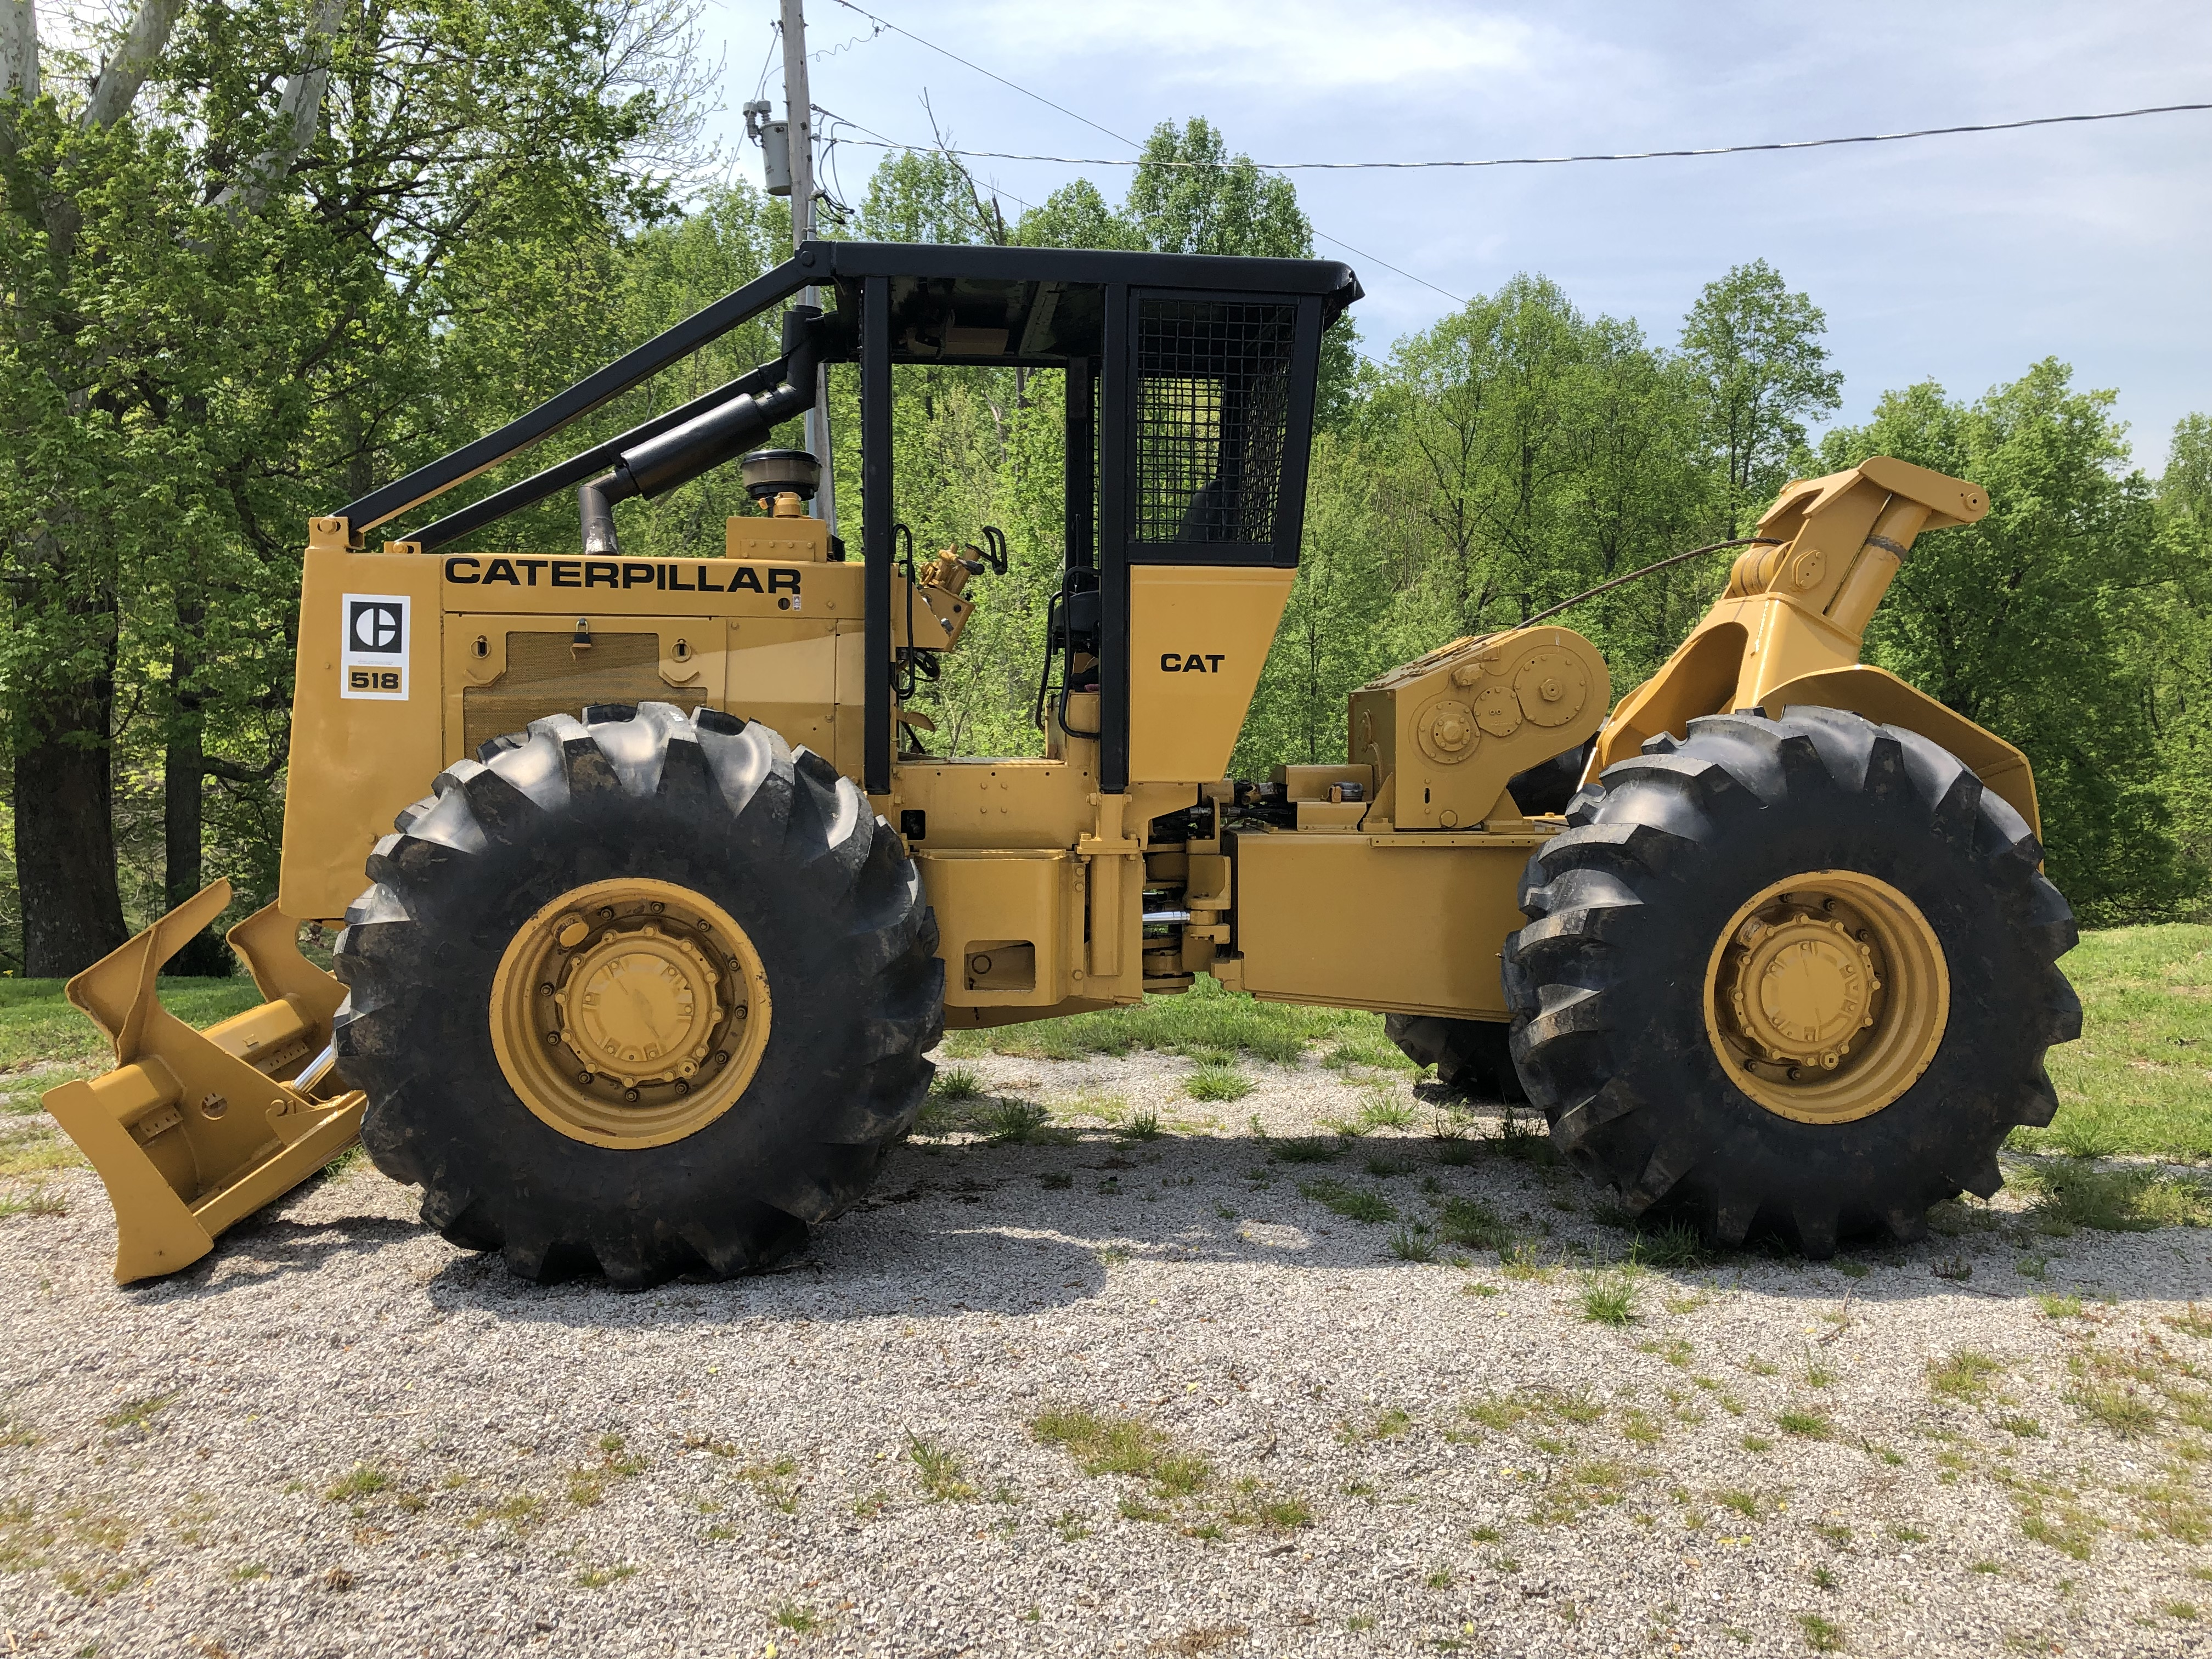 Mike Russell Bluegrass Logging n Sawmill Retirement Auction | Saturday June 1st | 10:00 am EST